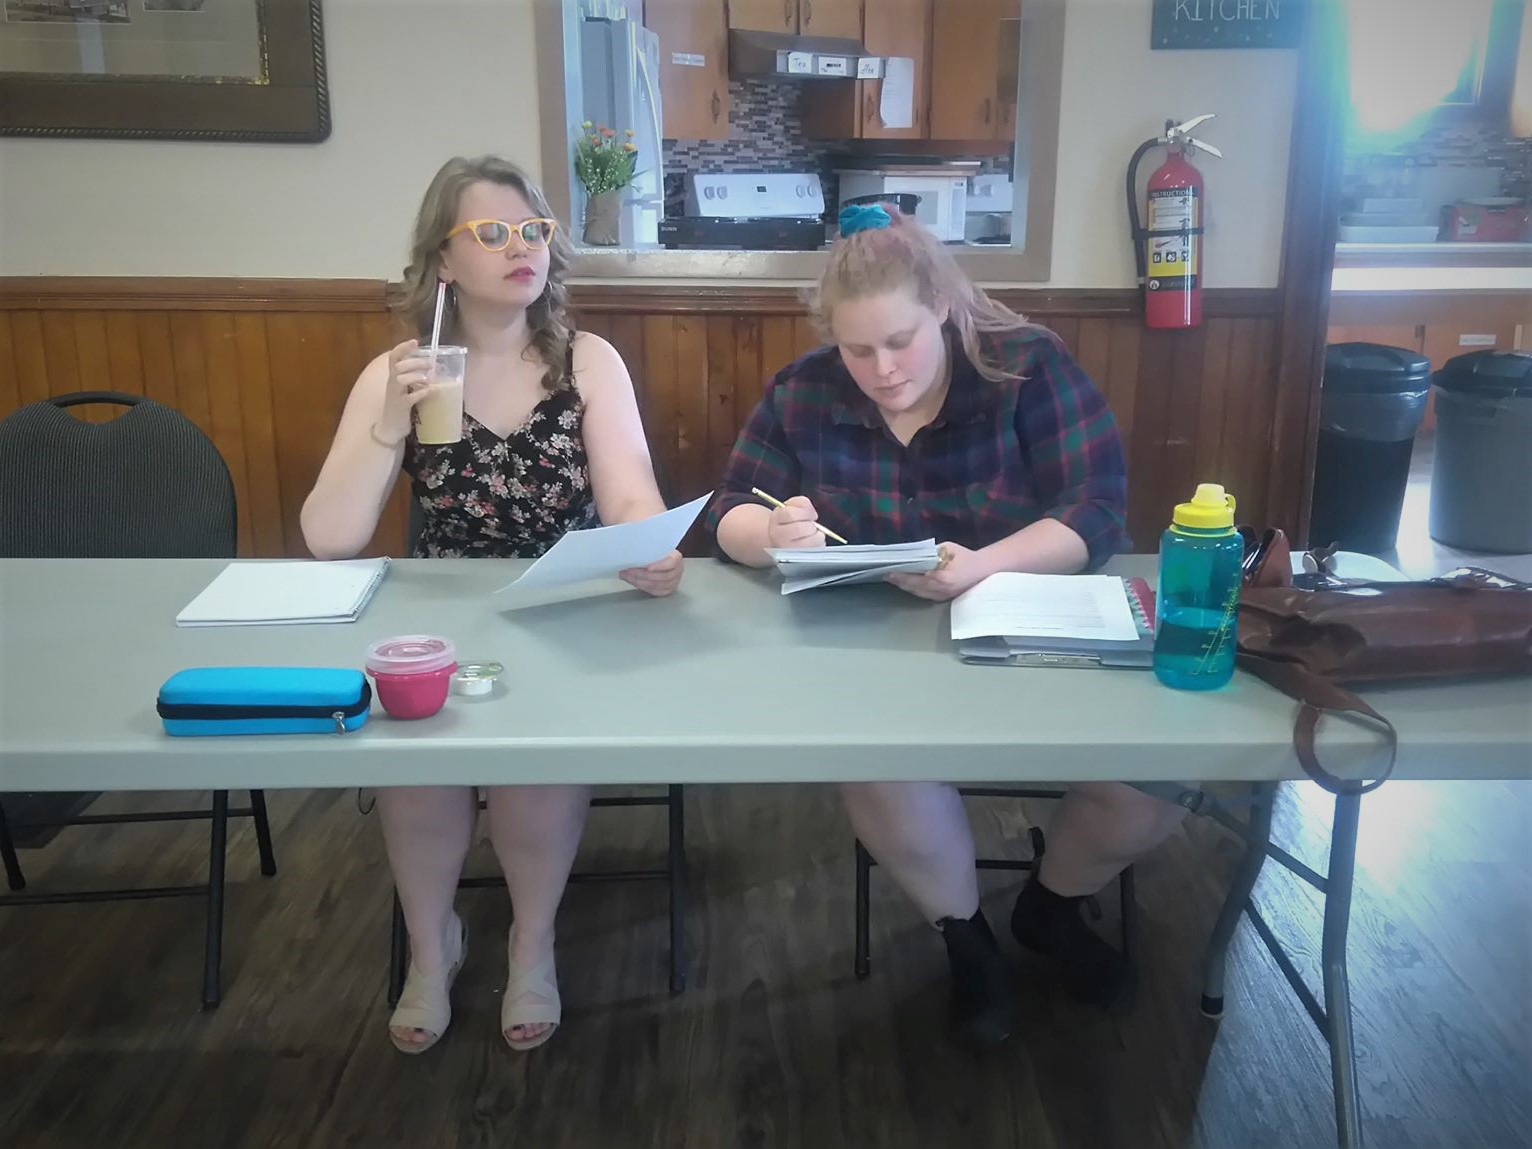 Myself and Morgandy cheesin' at the audition table.  Photo Credit: Kayleigh Alexander